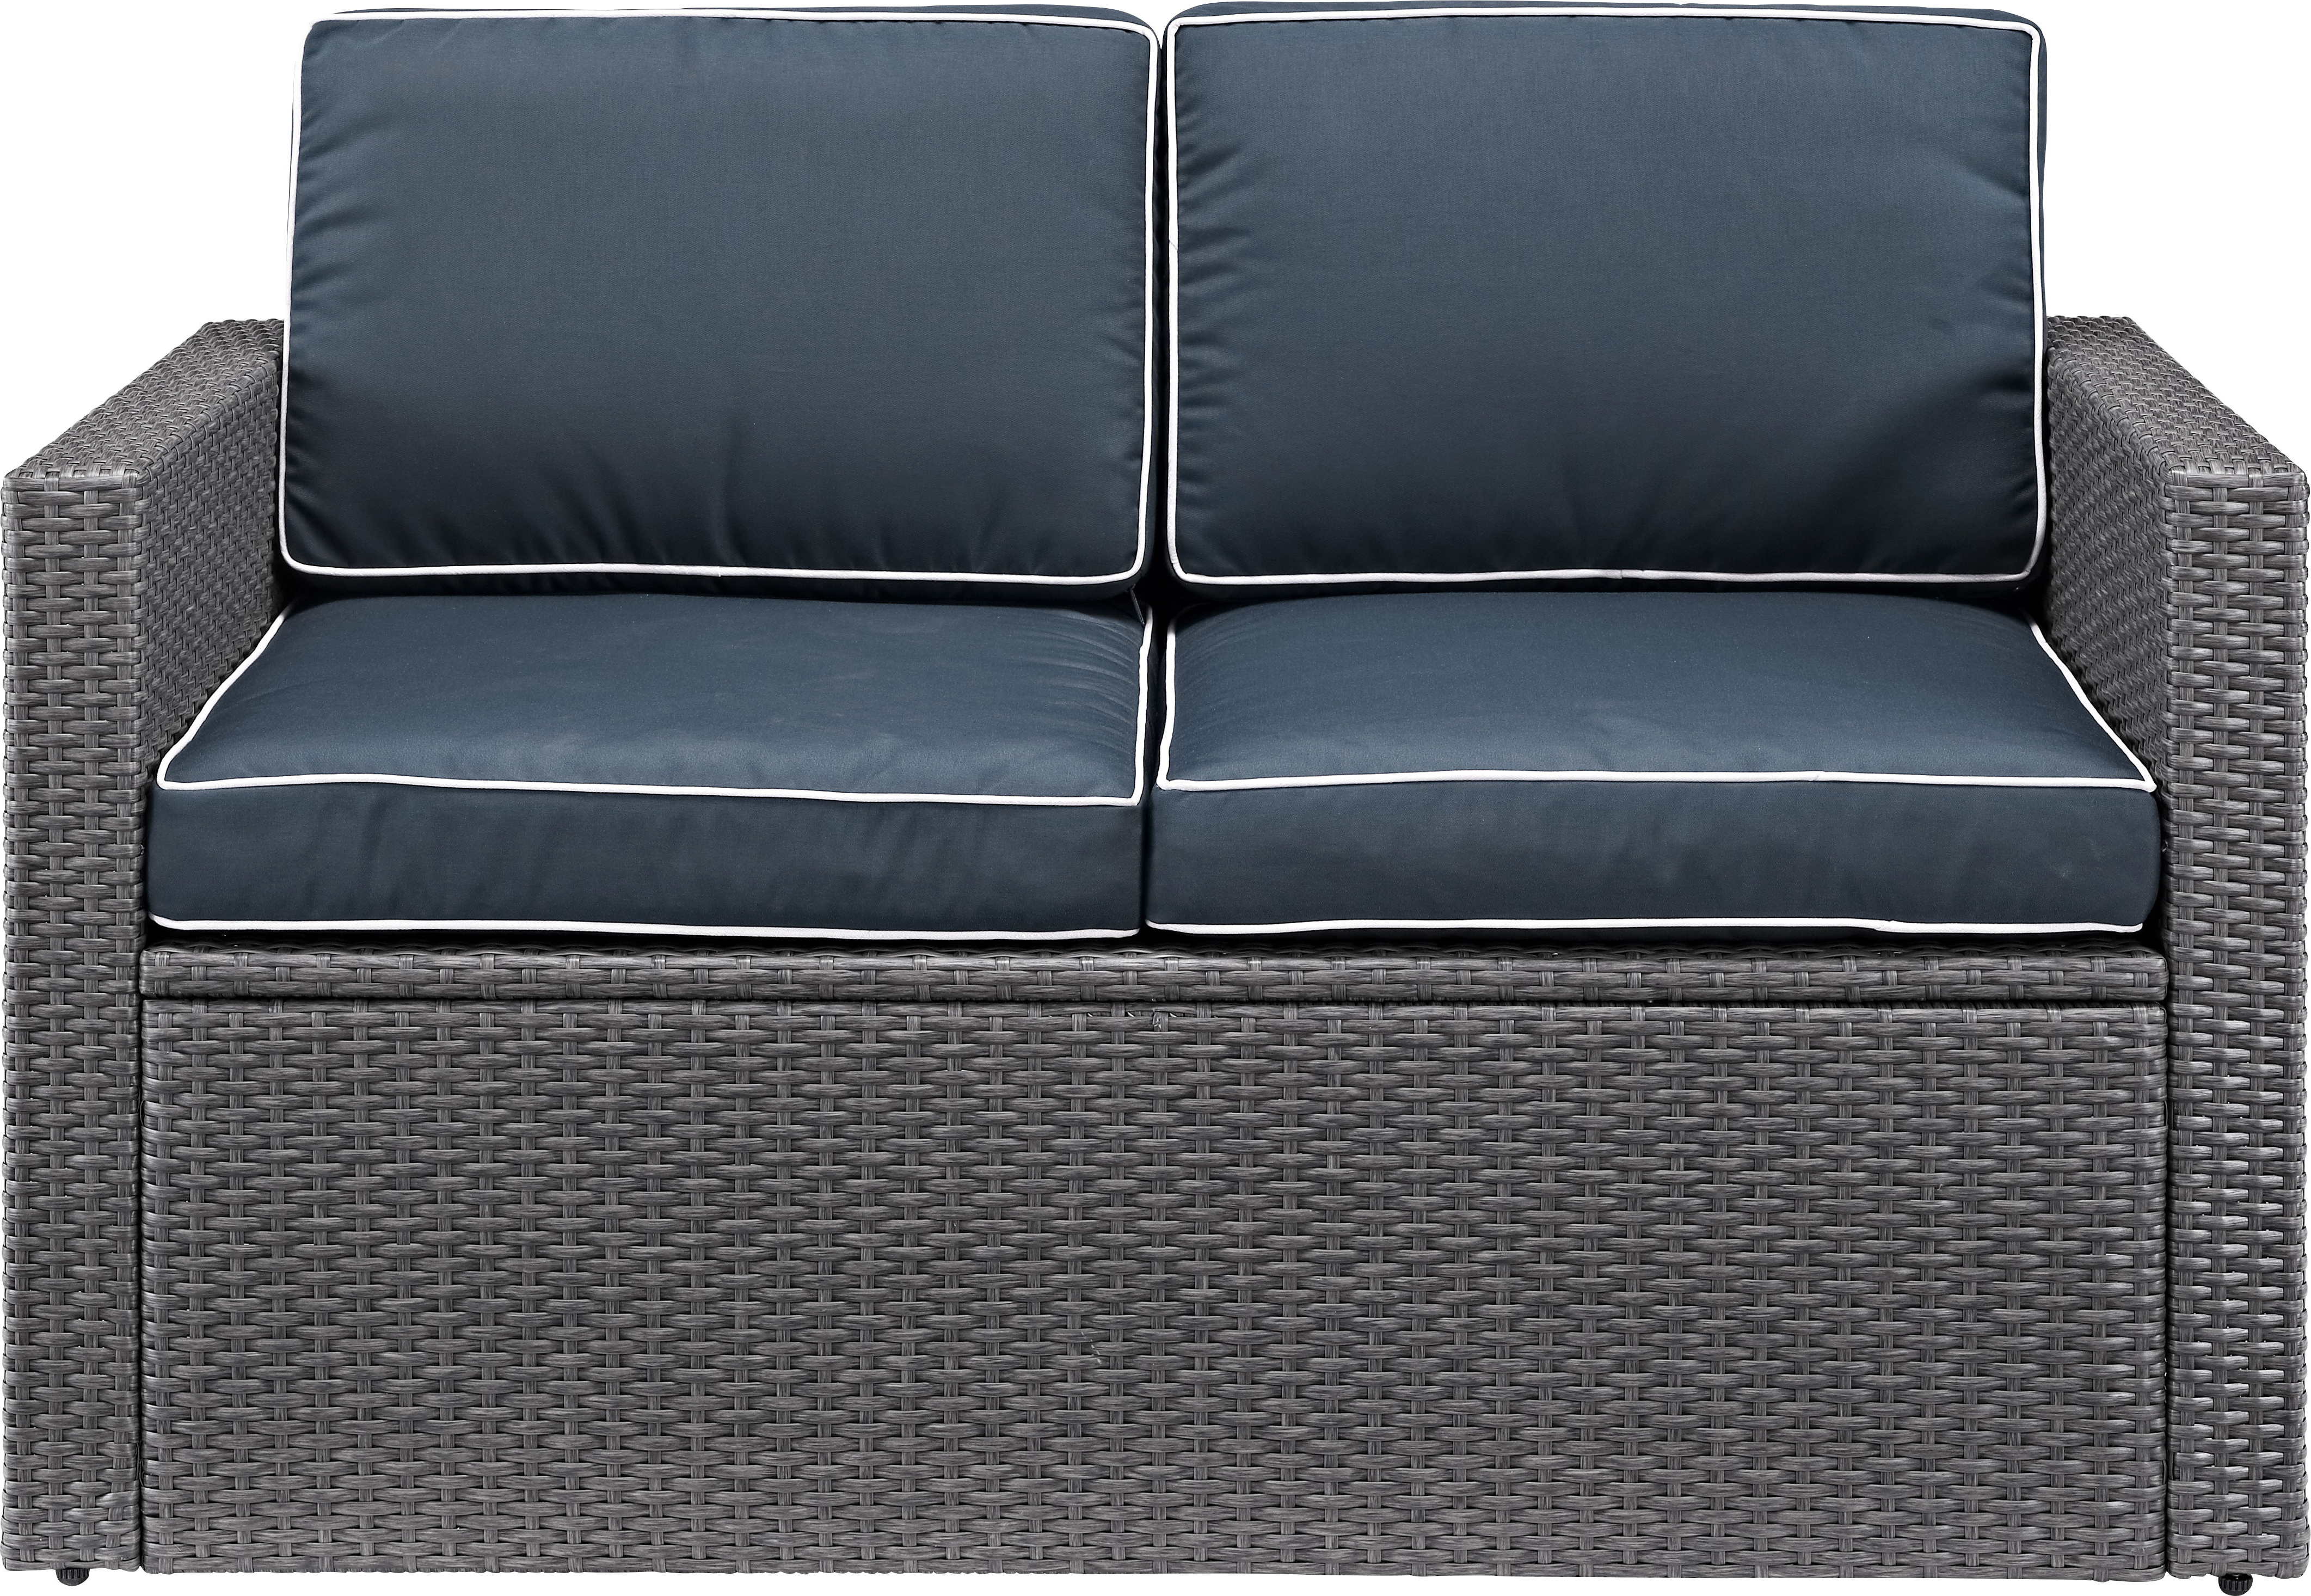 Current Mendelson Loveseat With Cushion Regarding Mendelson Loveseats With Cushion (View 3 of 20)